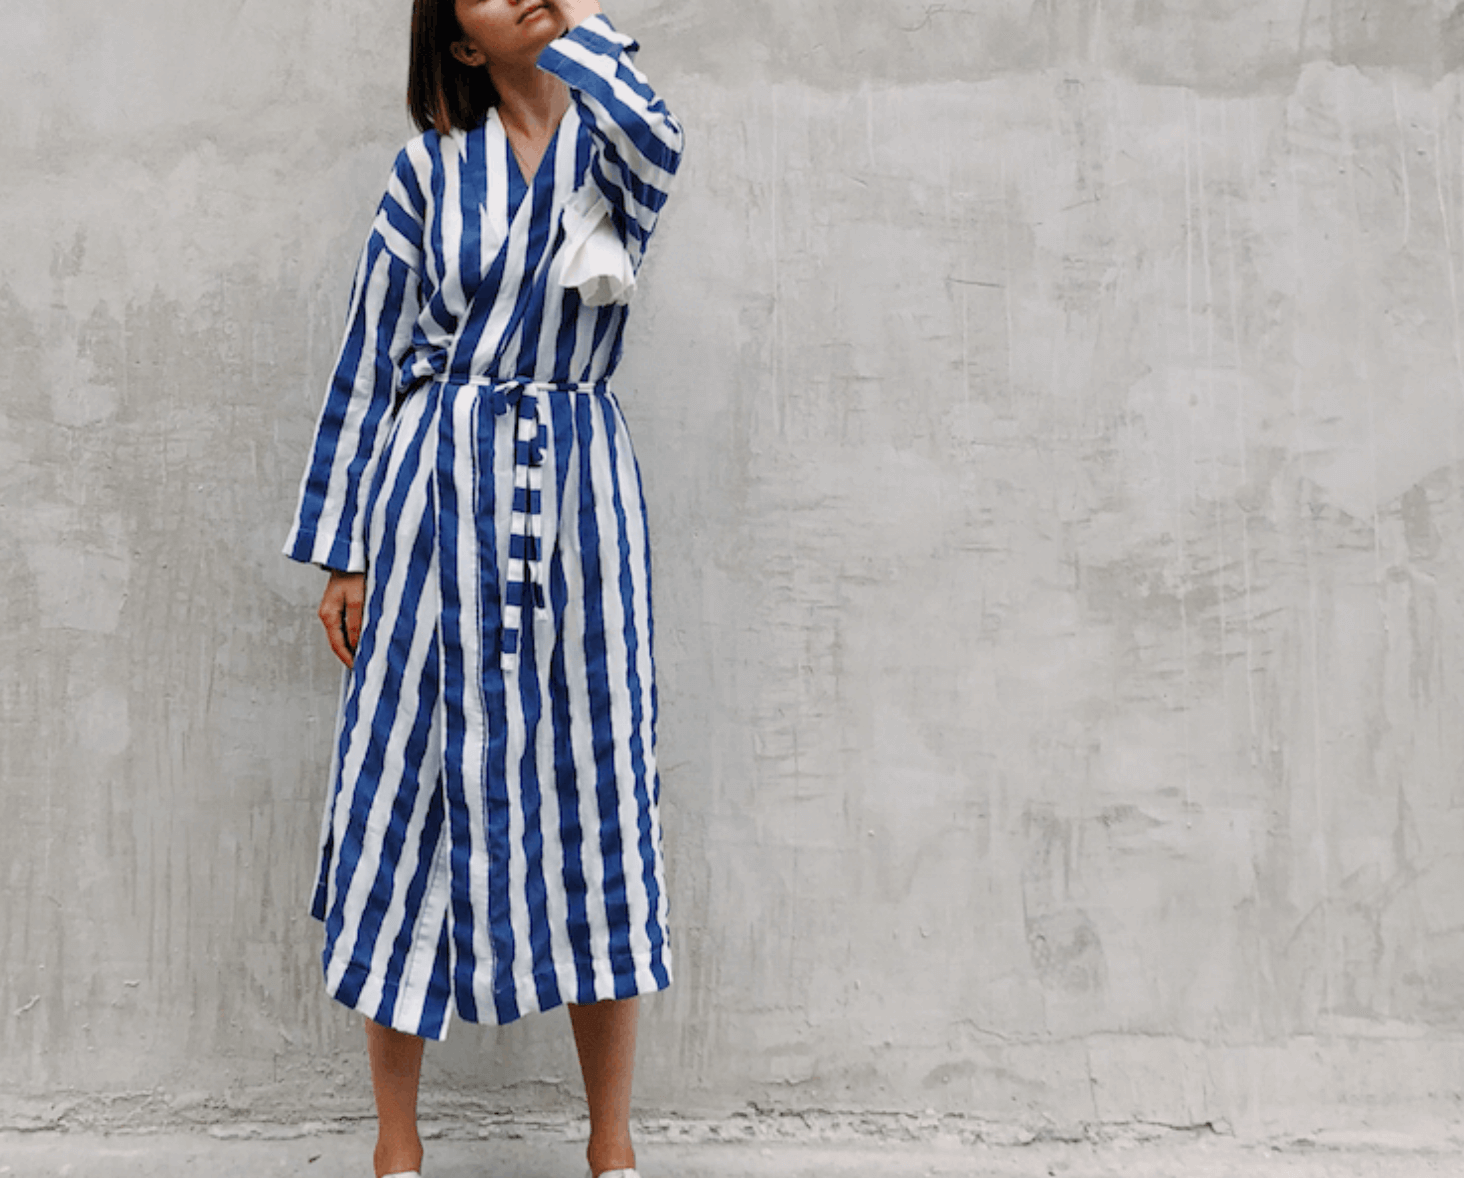 Stylish Modest Clothing A 2019 Guide